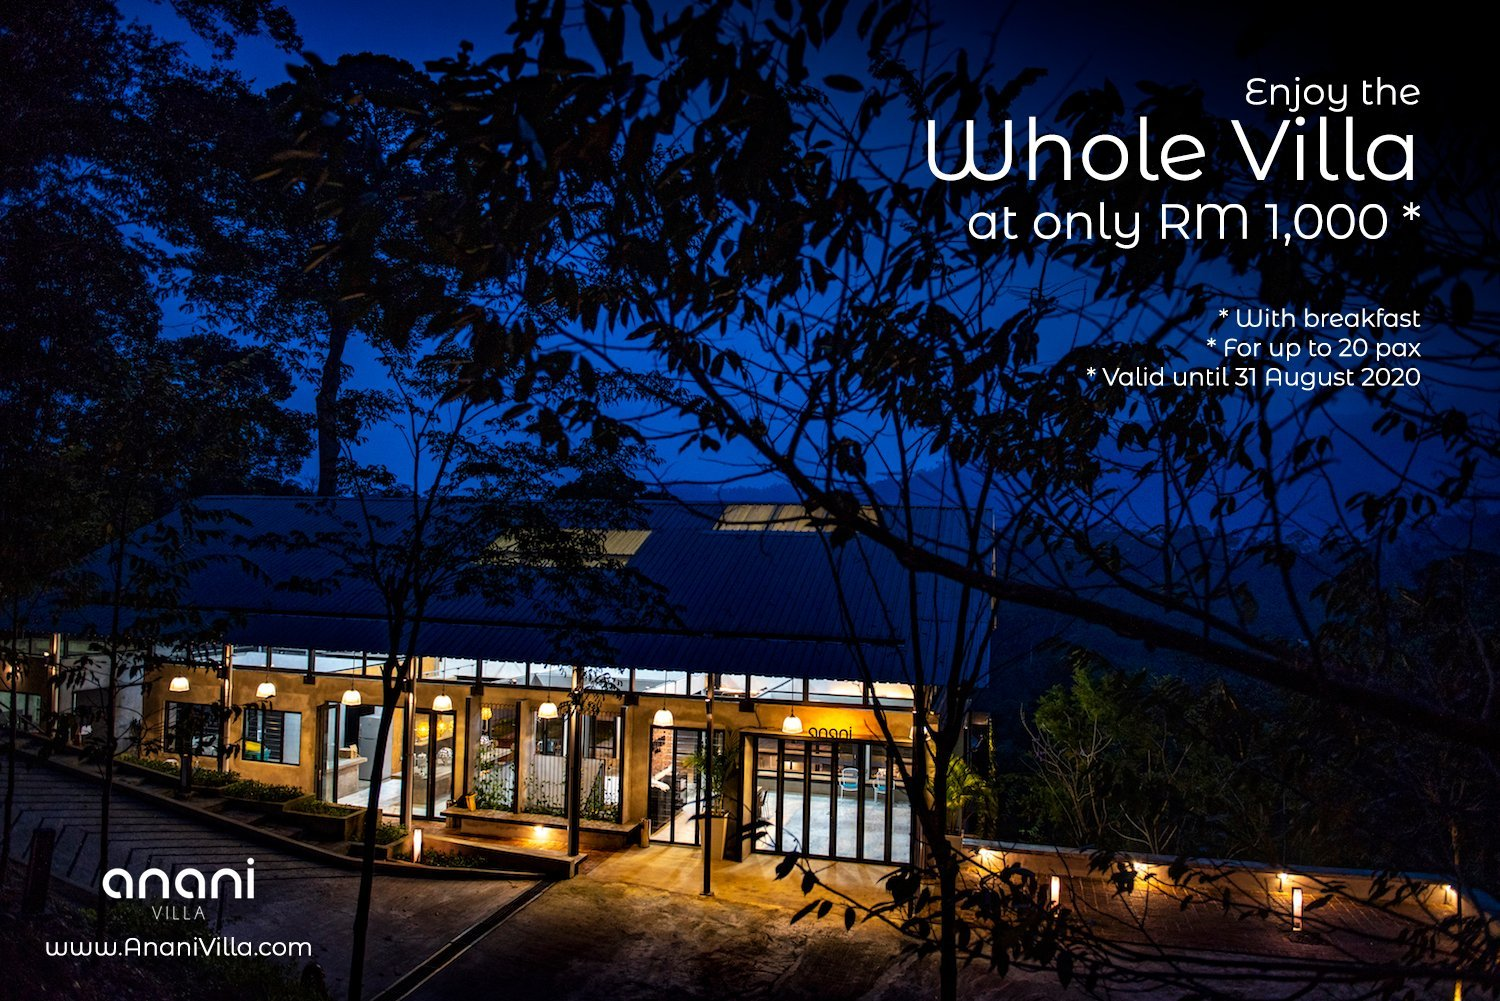 Promotion 2020 - Enjoy the Whole Villa at only RM 1,000